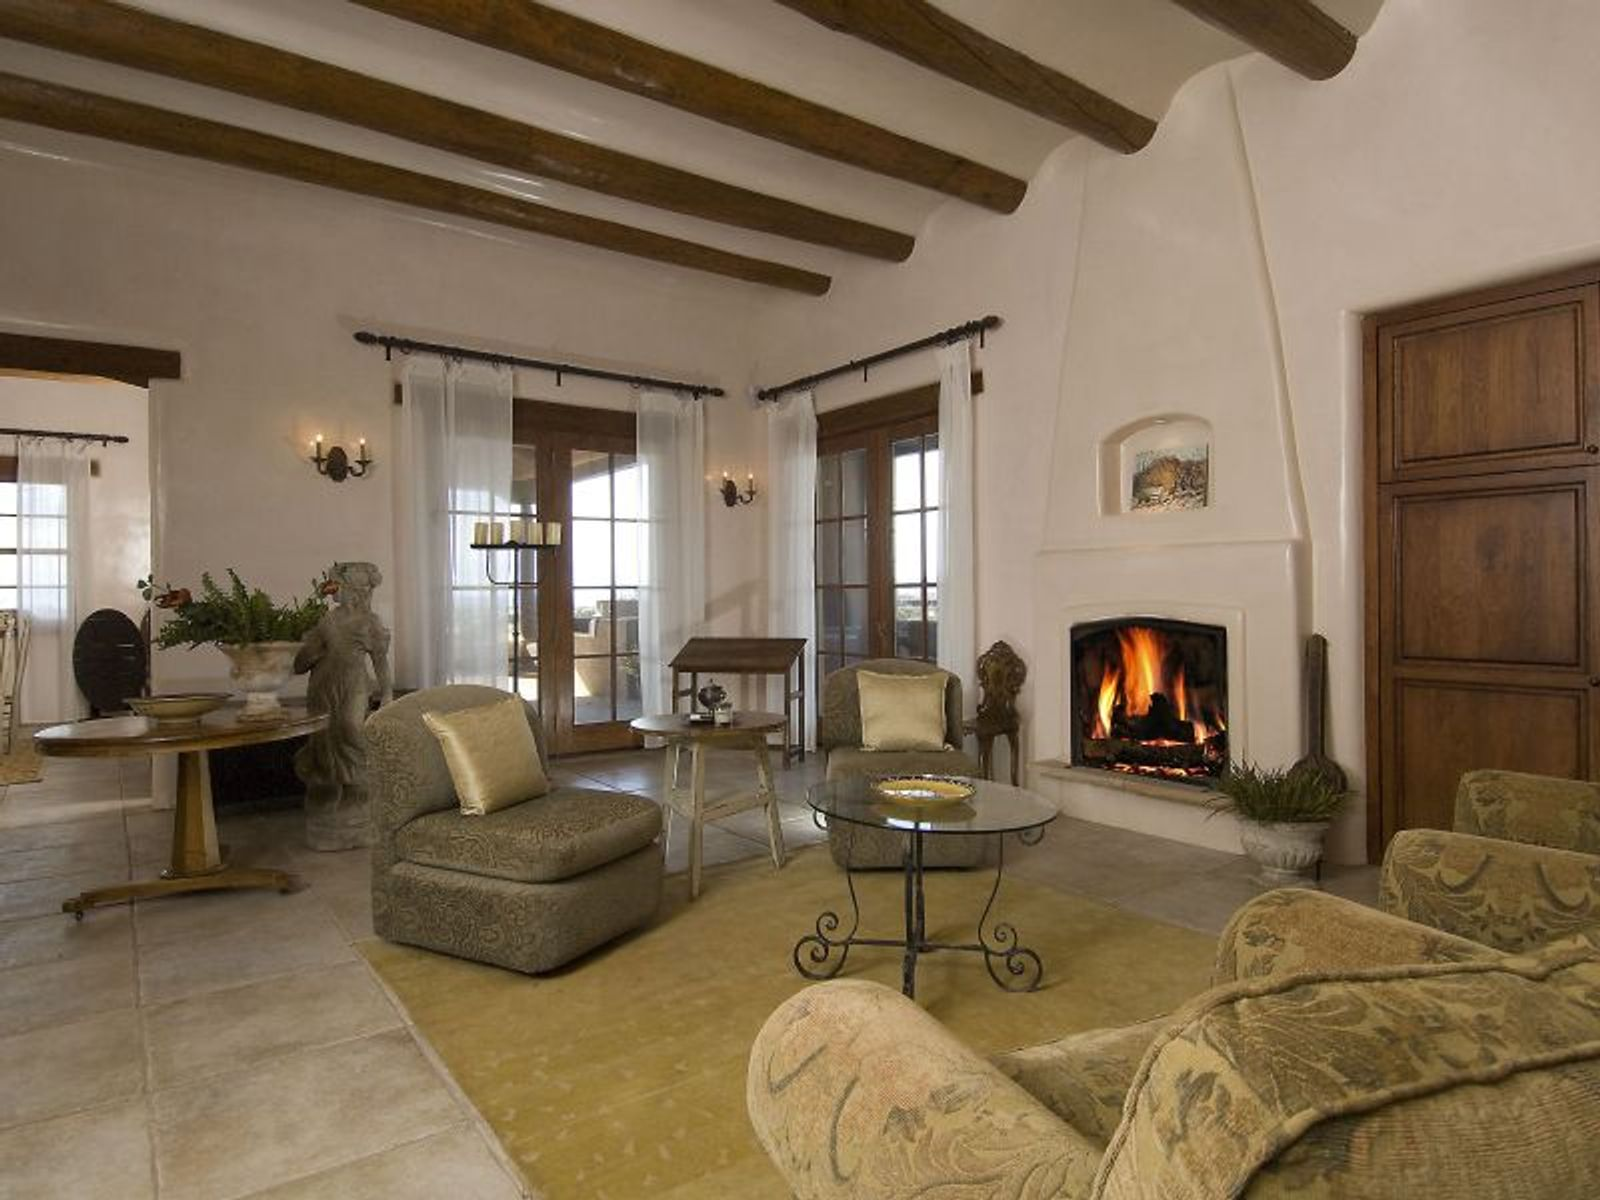 9 Lupine Court, Santa Fe NM Single Family Home - Santa Fe Real Estate